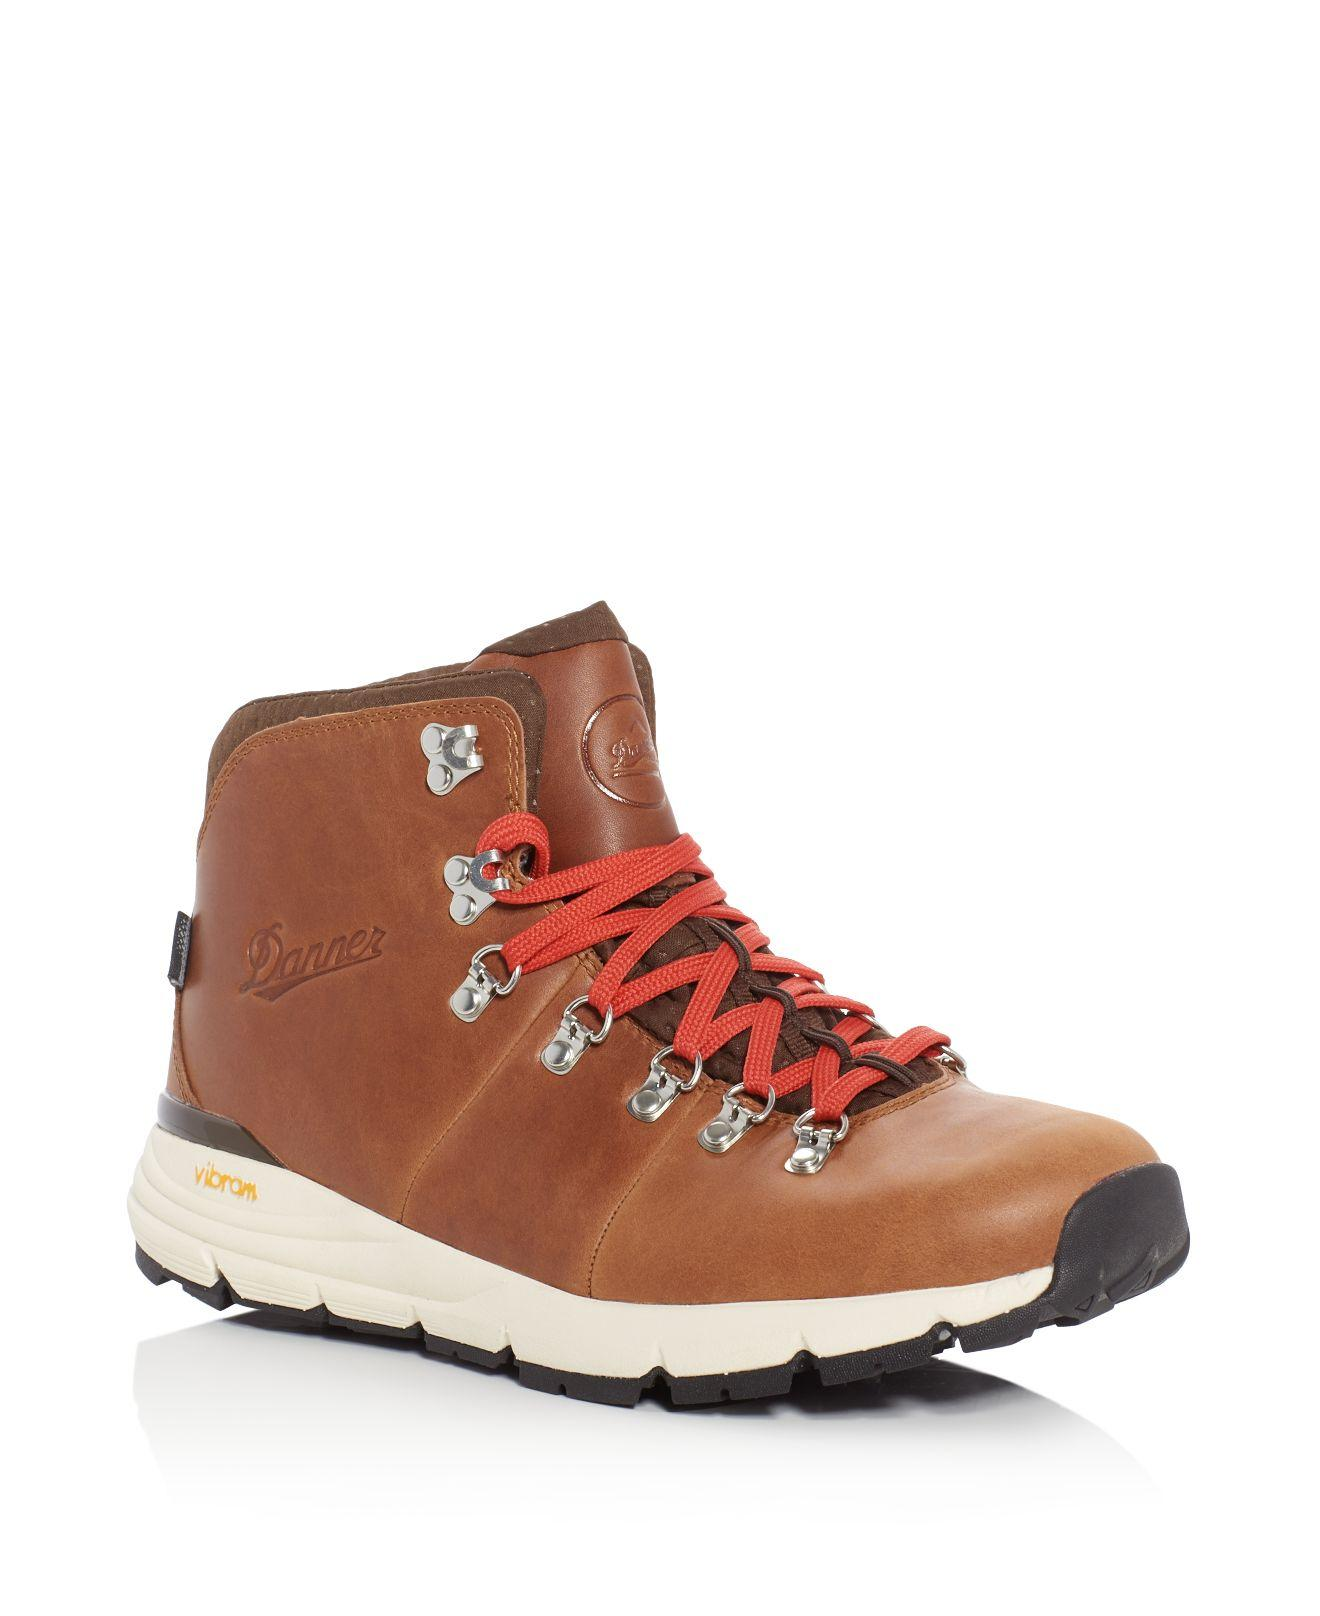 Danner Mountain 600 Waterproof Sneaker Boots For Men Lyst